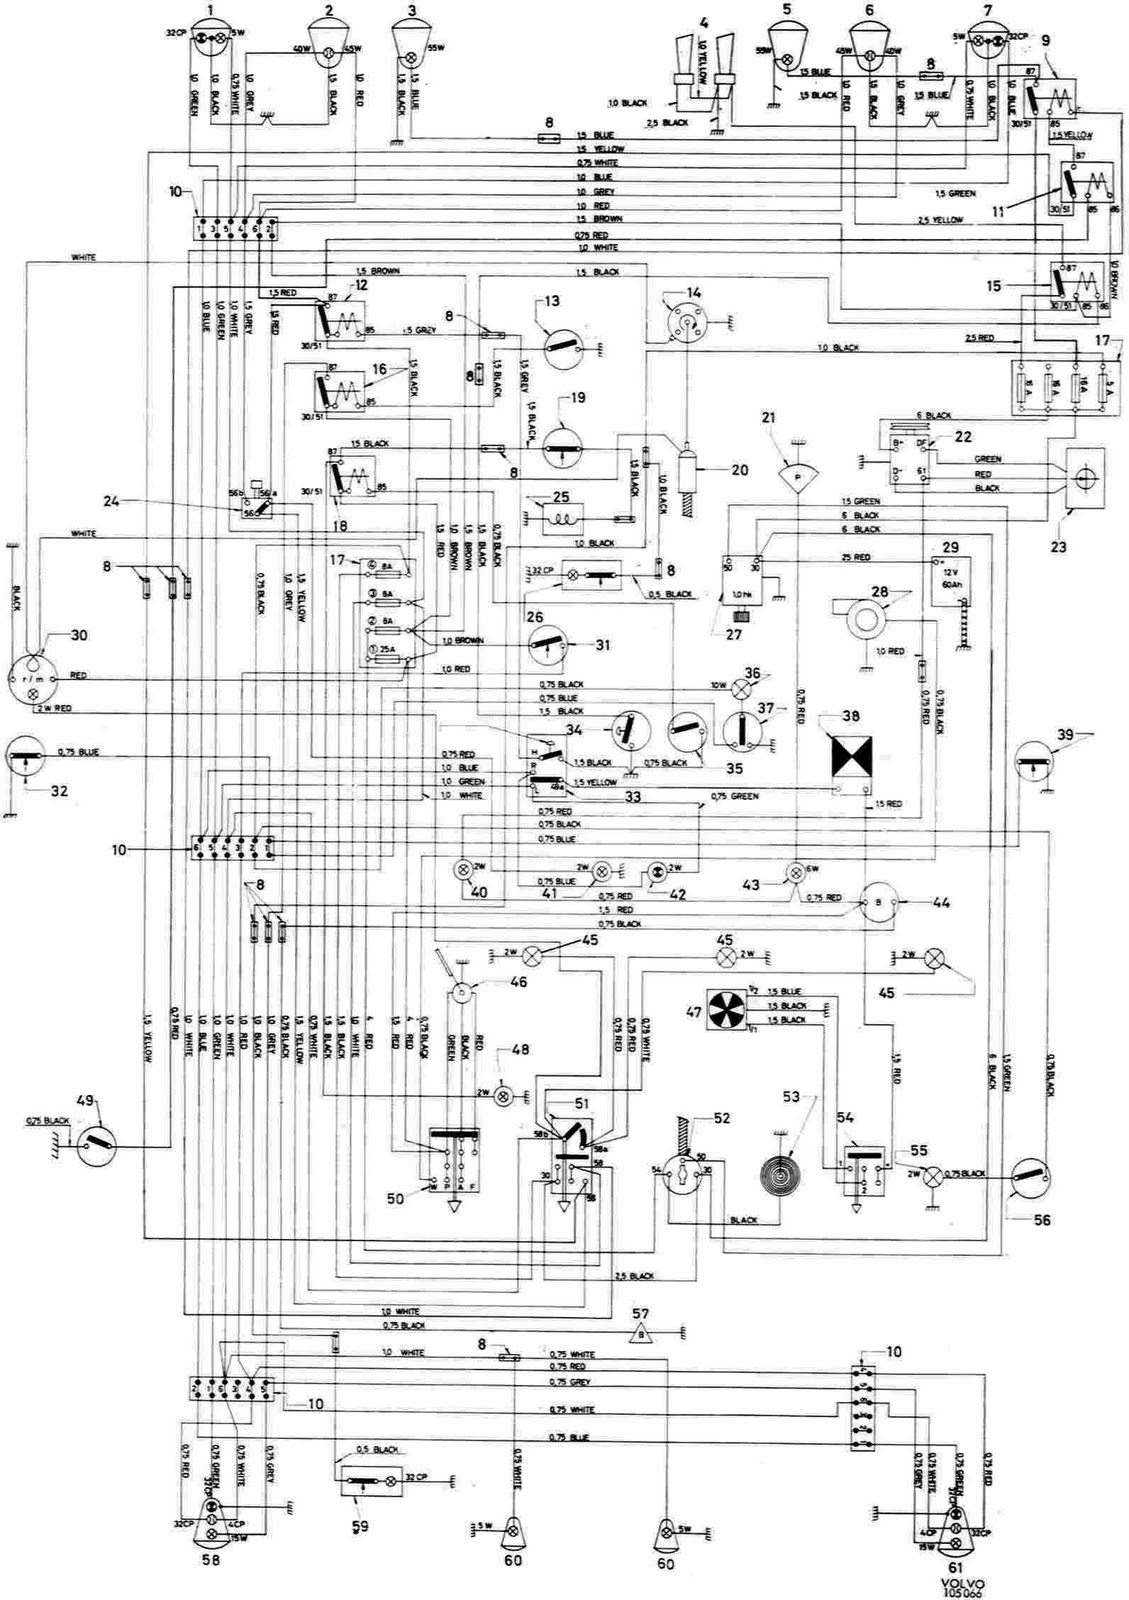 Kenworth Fuse Box Diagram Kenworth Wiring Diagram